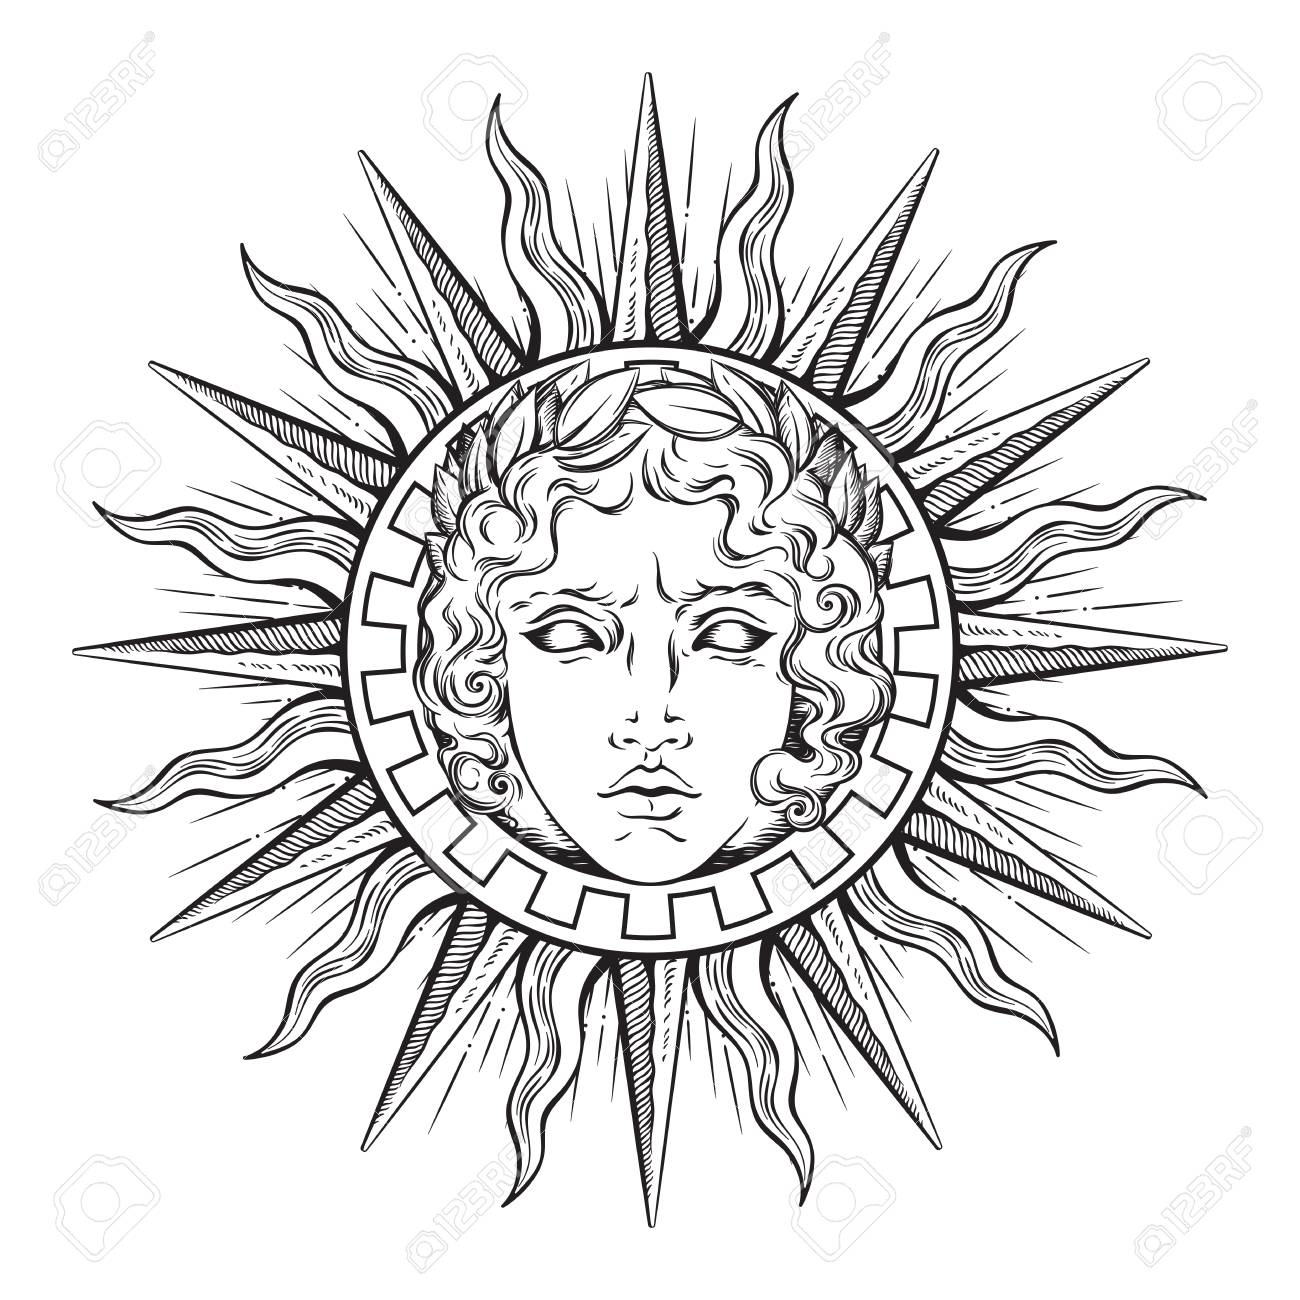 Hand Drawn Antique Style Sun With Face Of The Greek And Roman